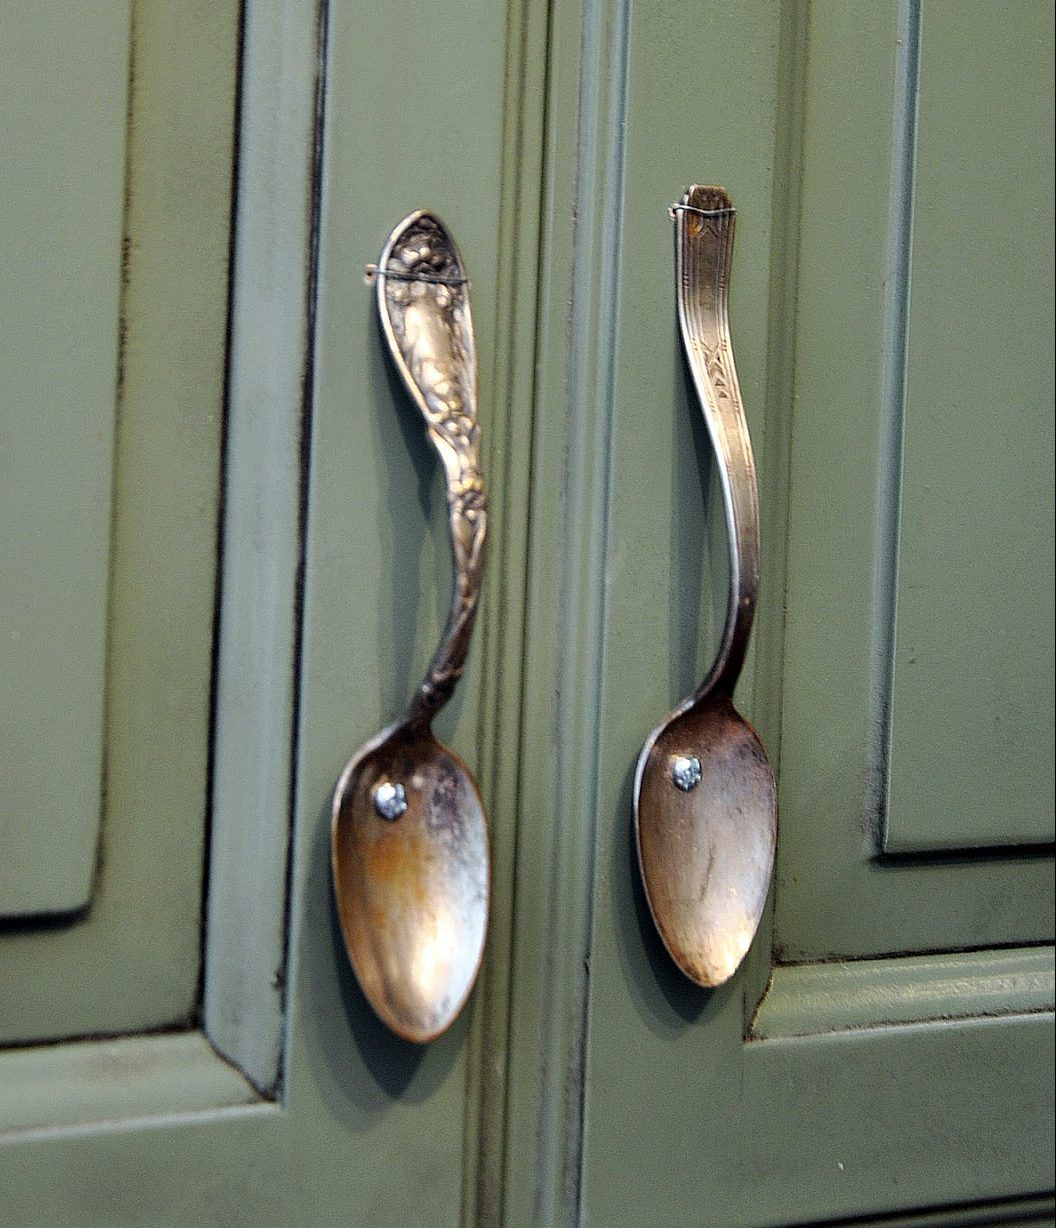 17 Most Creative Ideas For Repurposing Kitchen Items Kitchen Cabinet Handles Vintage Spoons Diy Furniture